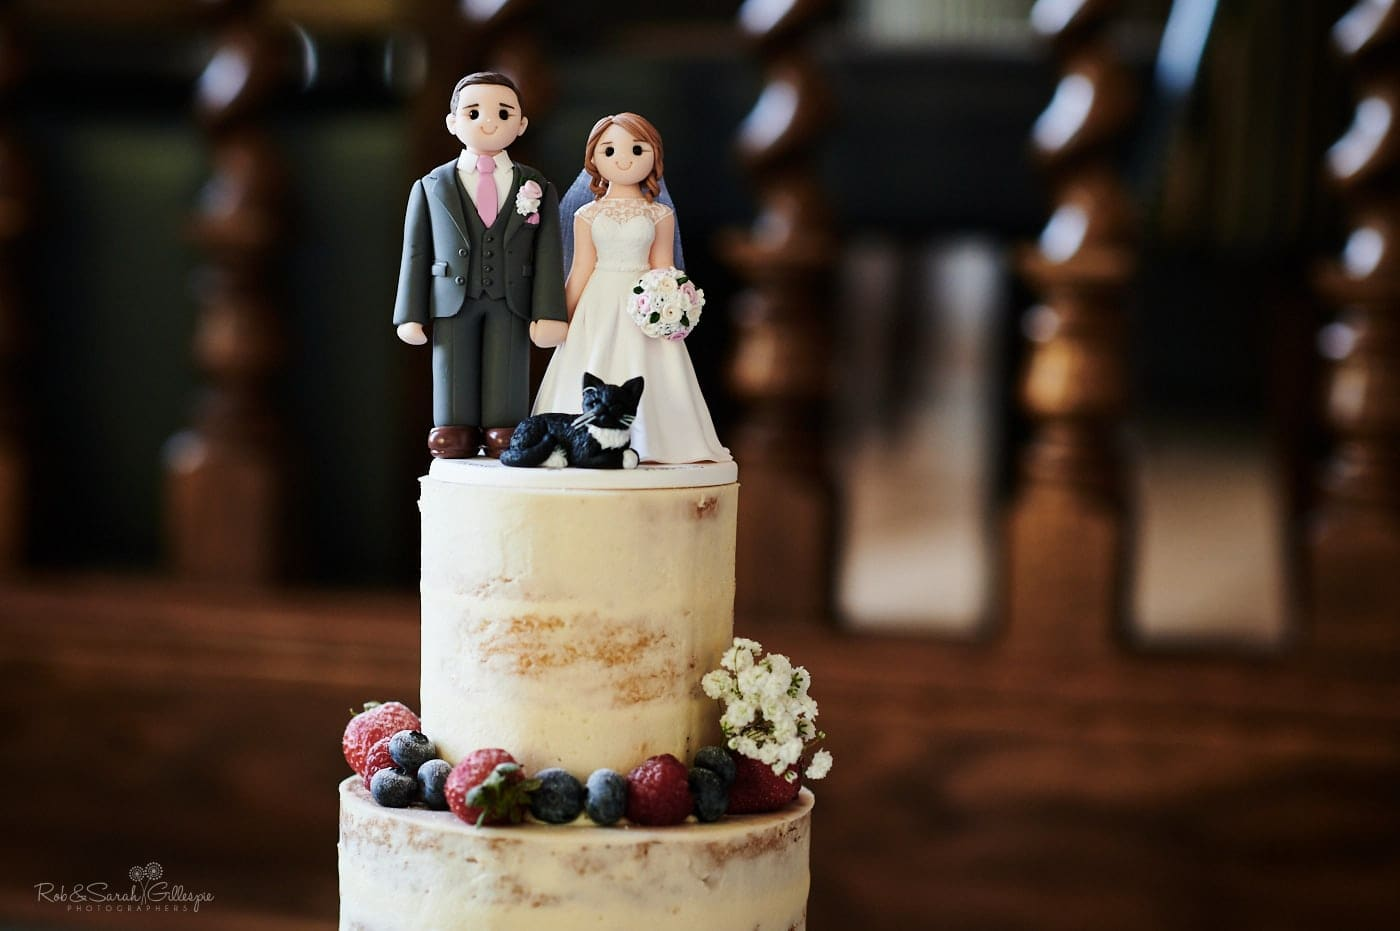 Wedding cake topper with bride, groom and black cat